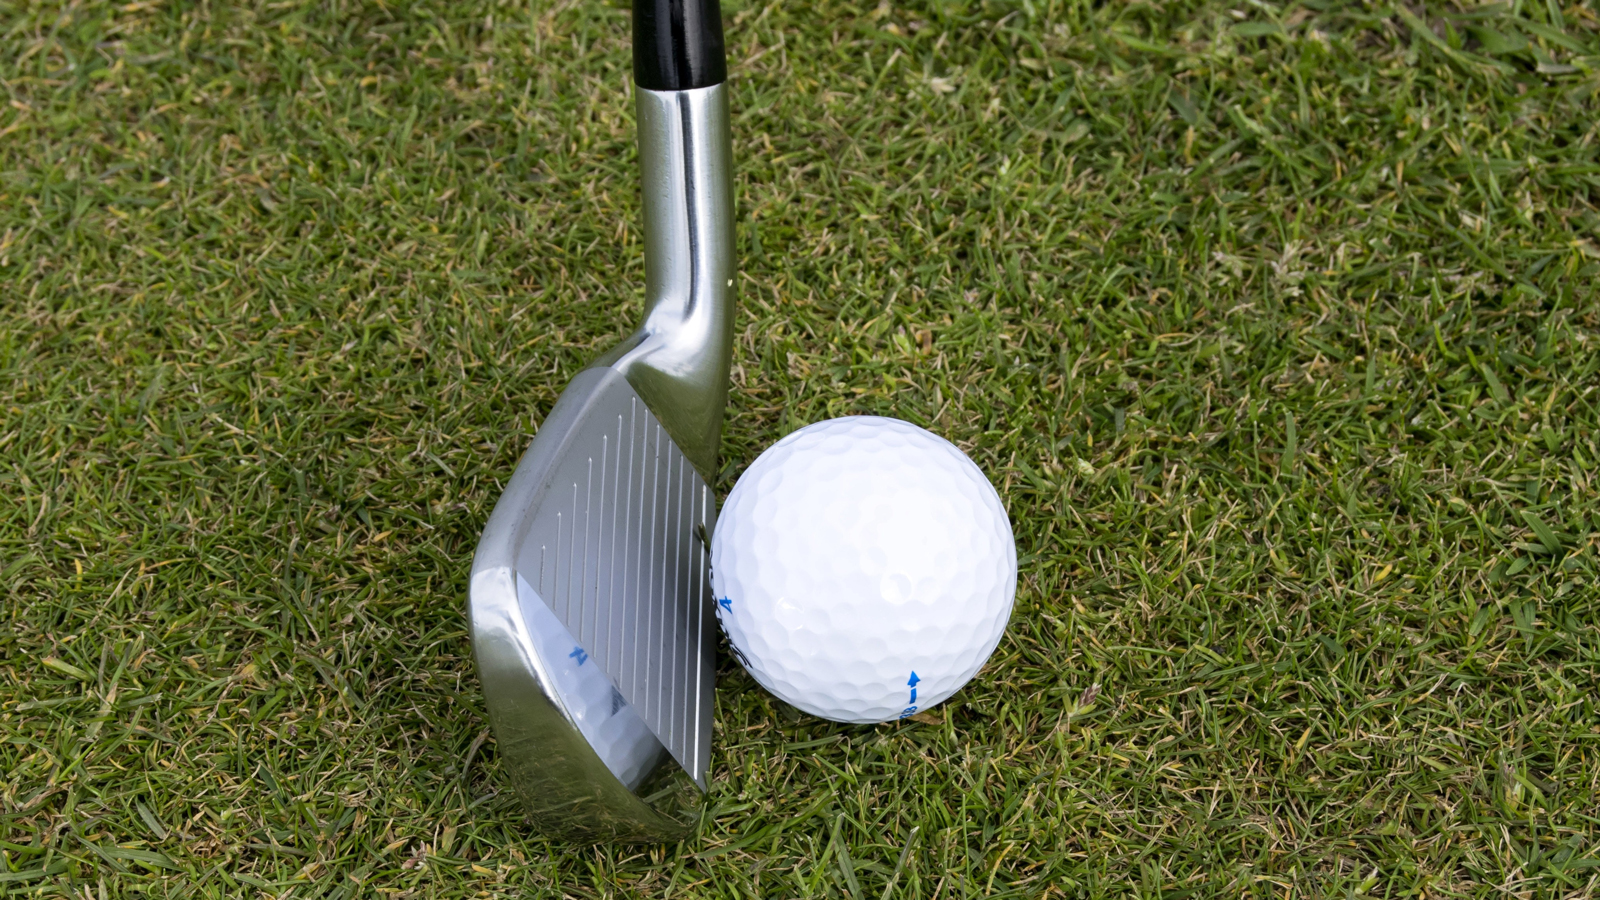 Study finds you can reduce your golf handicap with simple mental practice